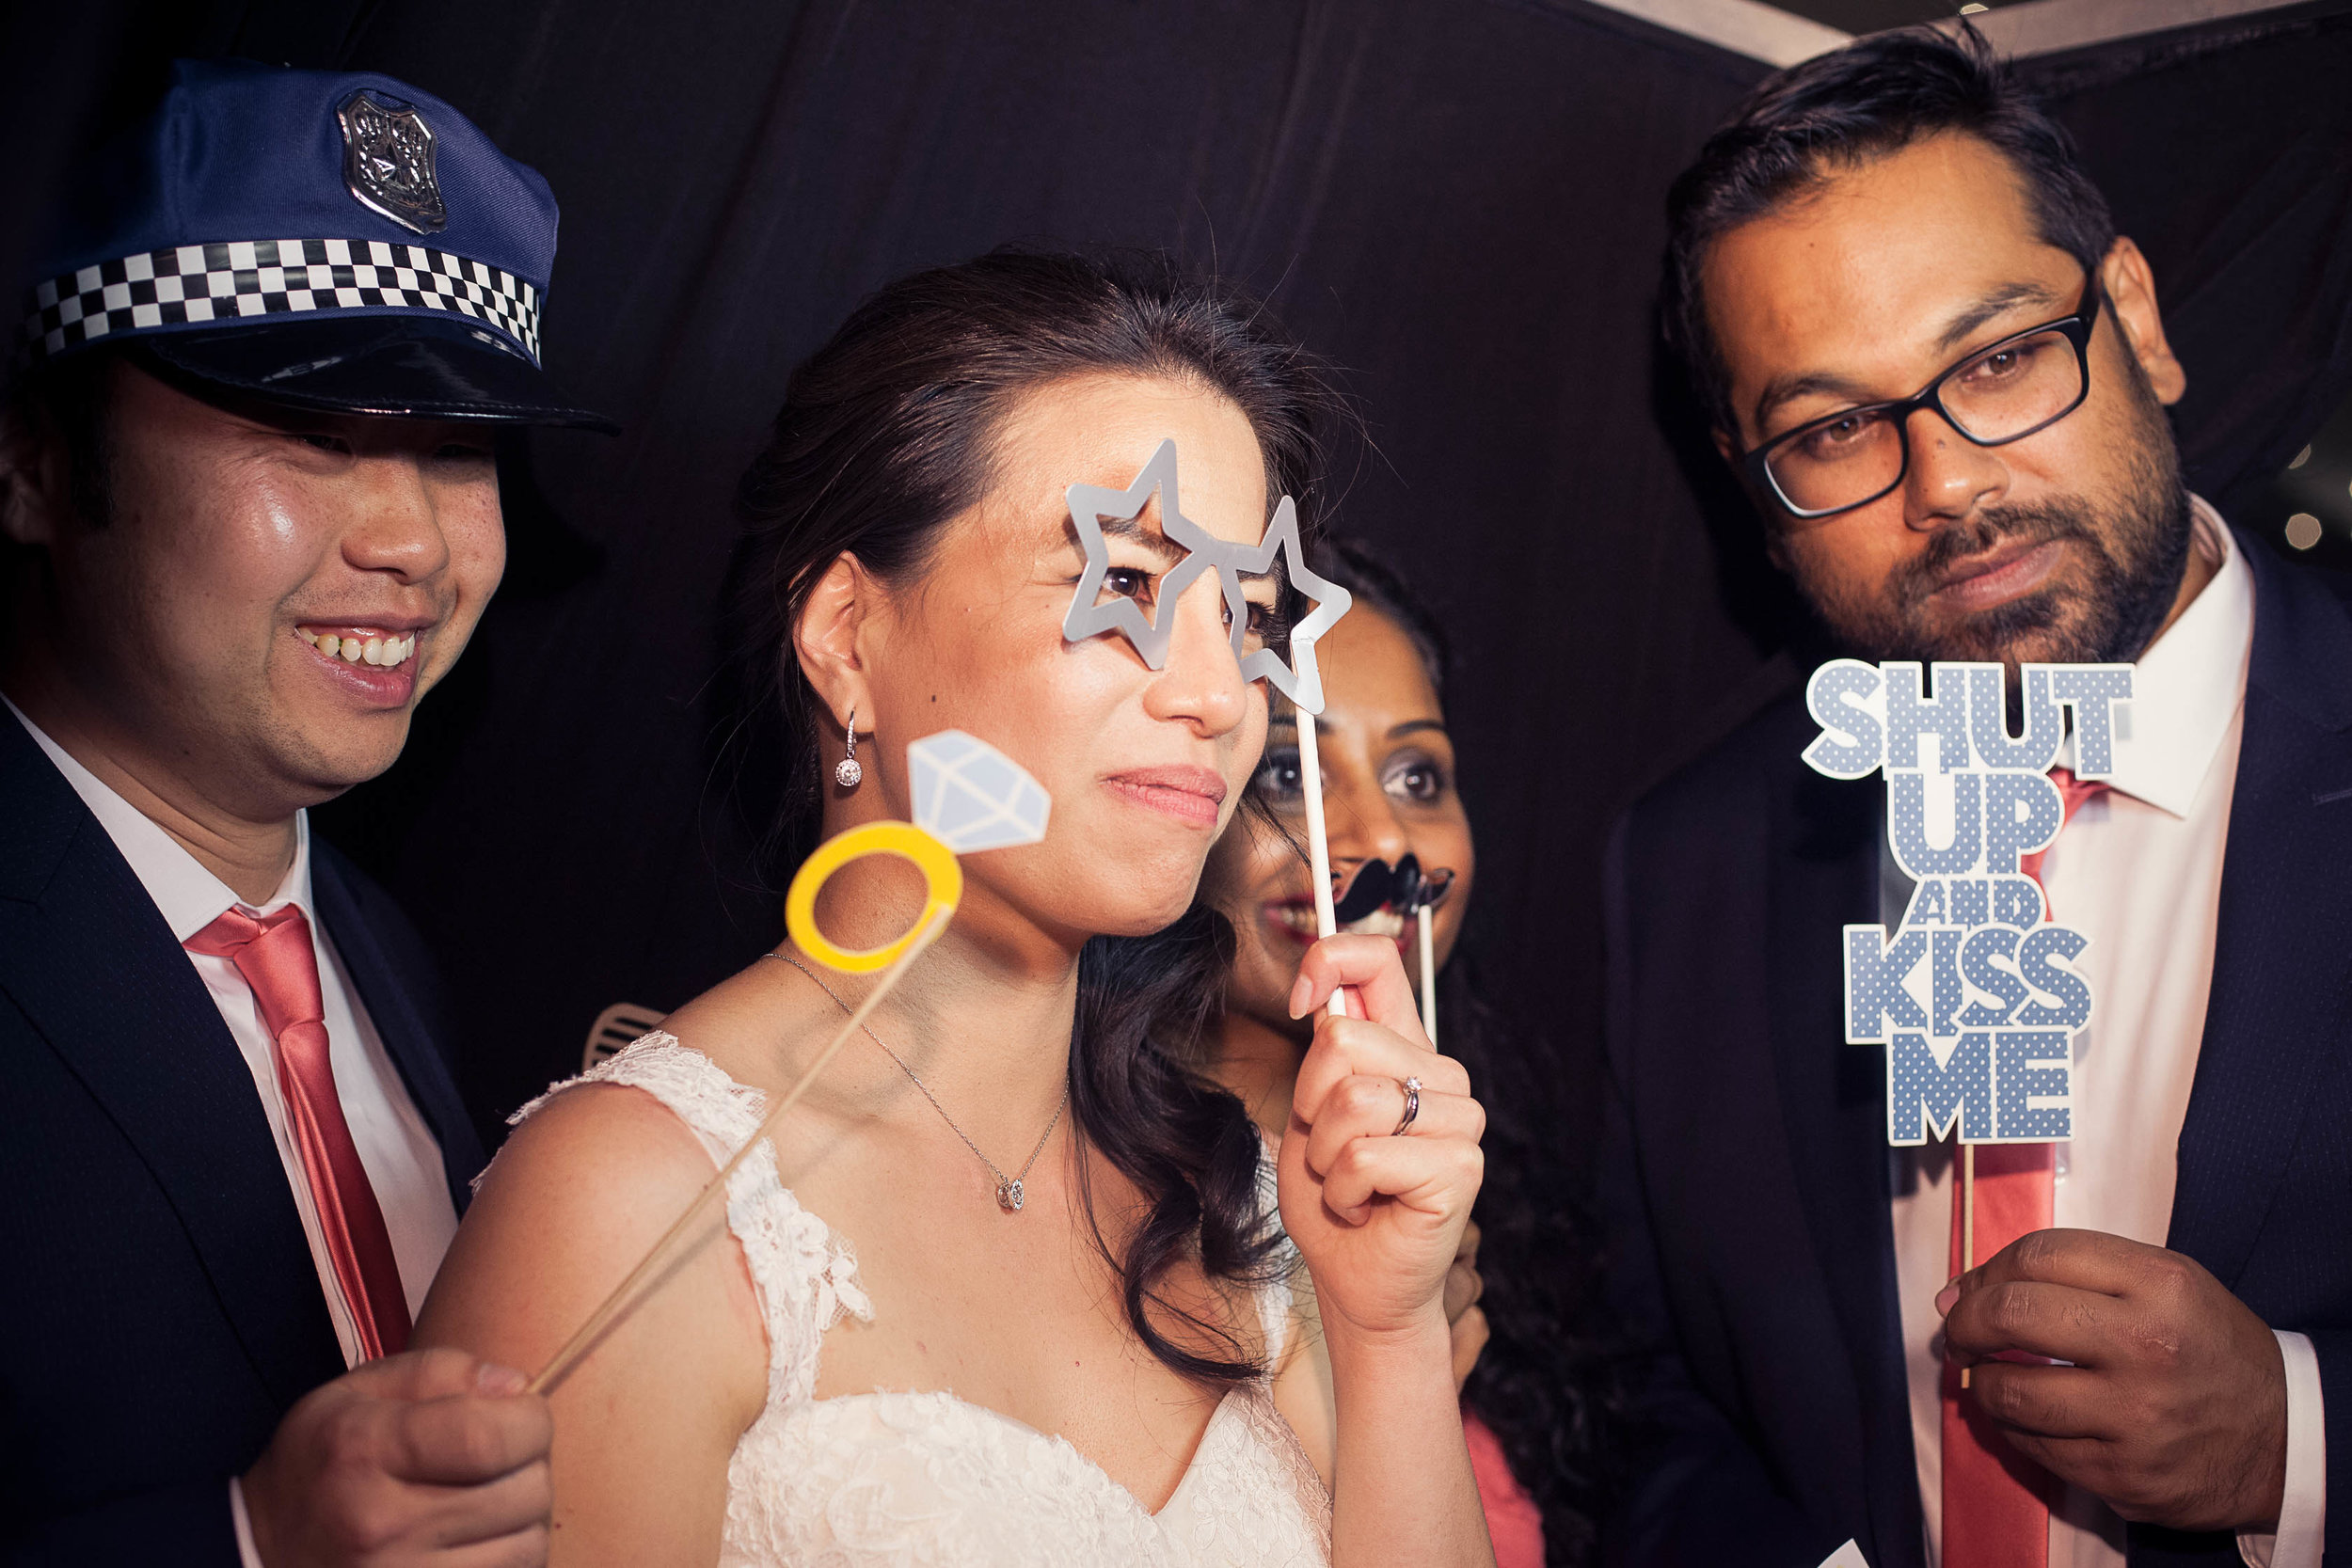 Bridal Party in Photo Booth